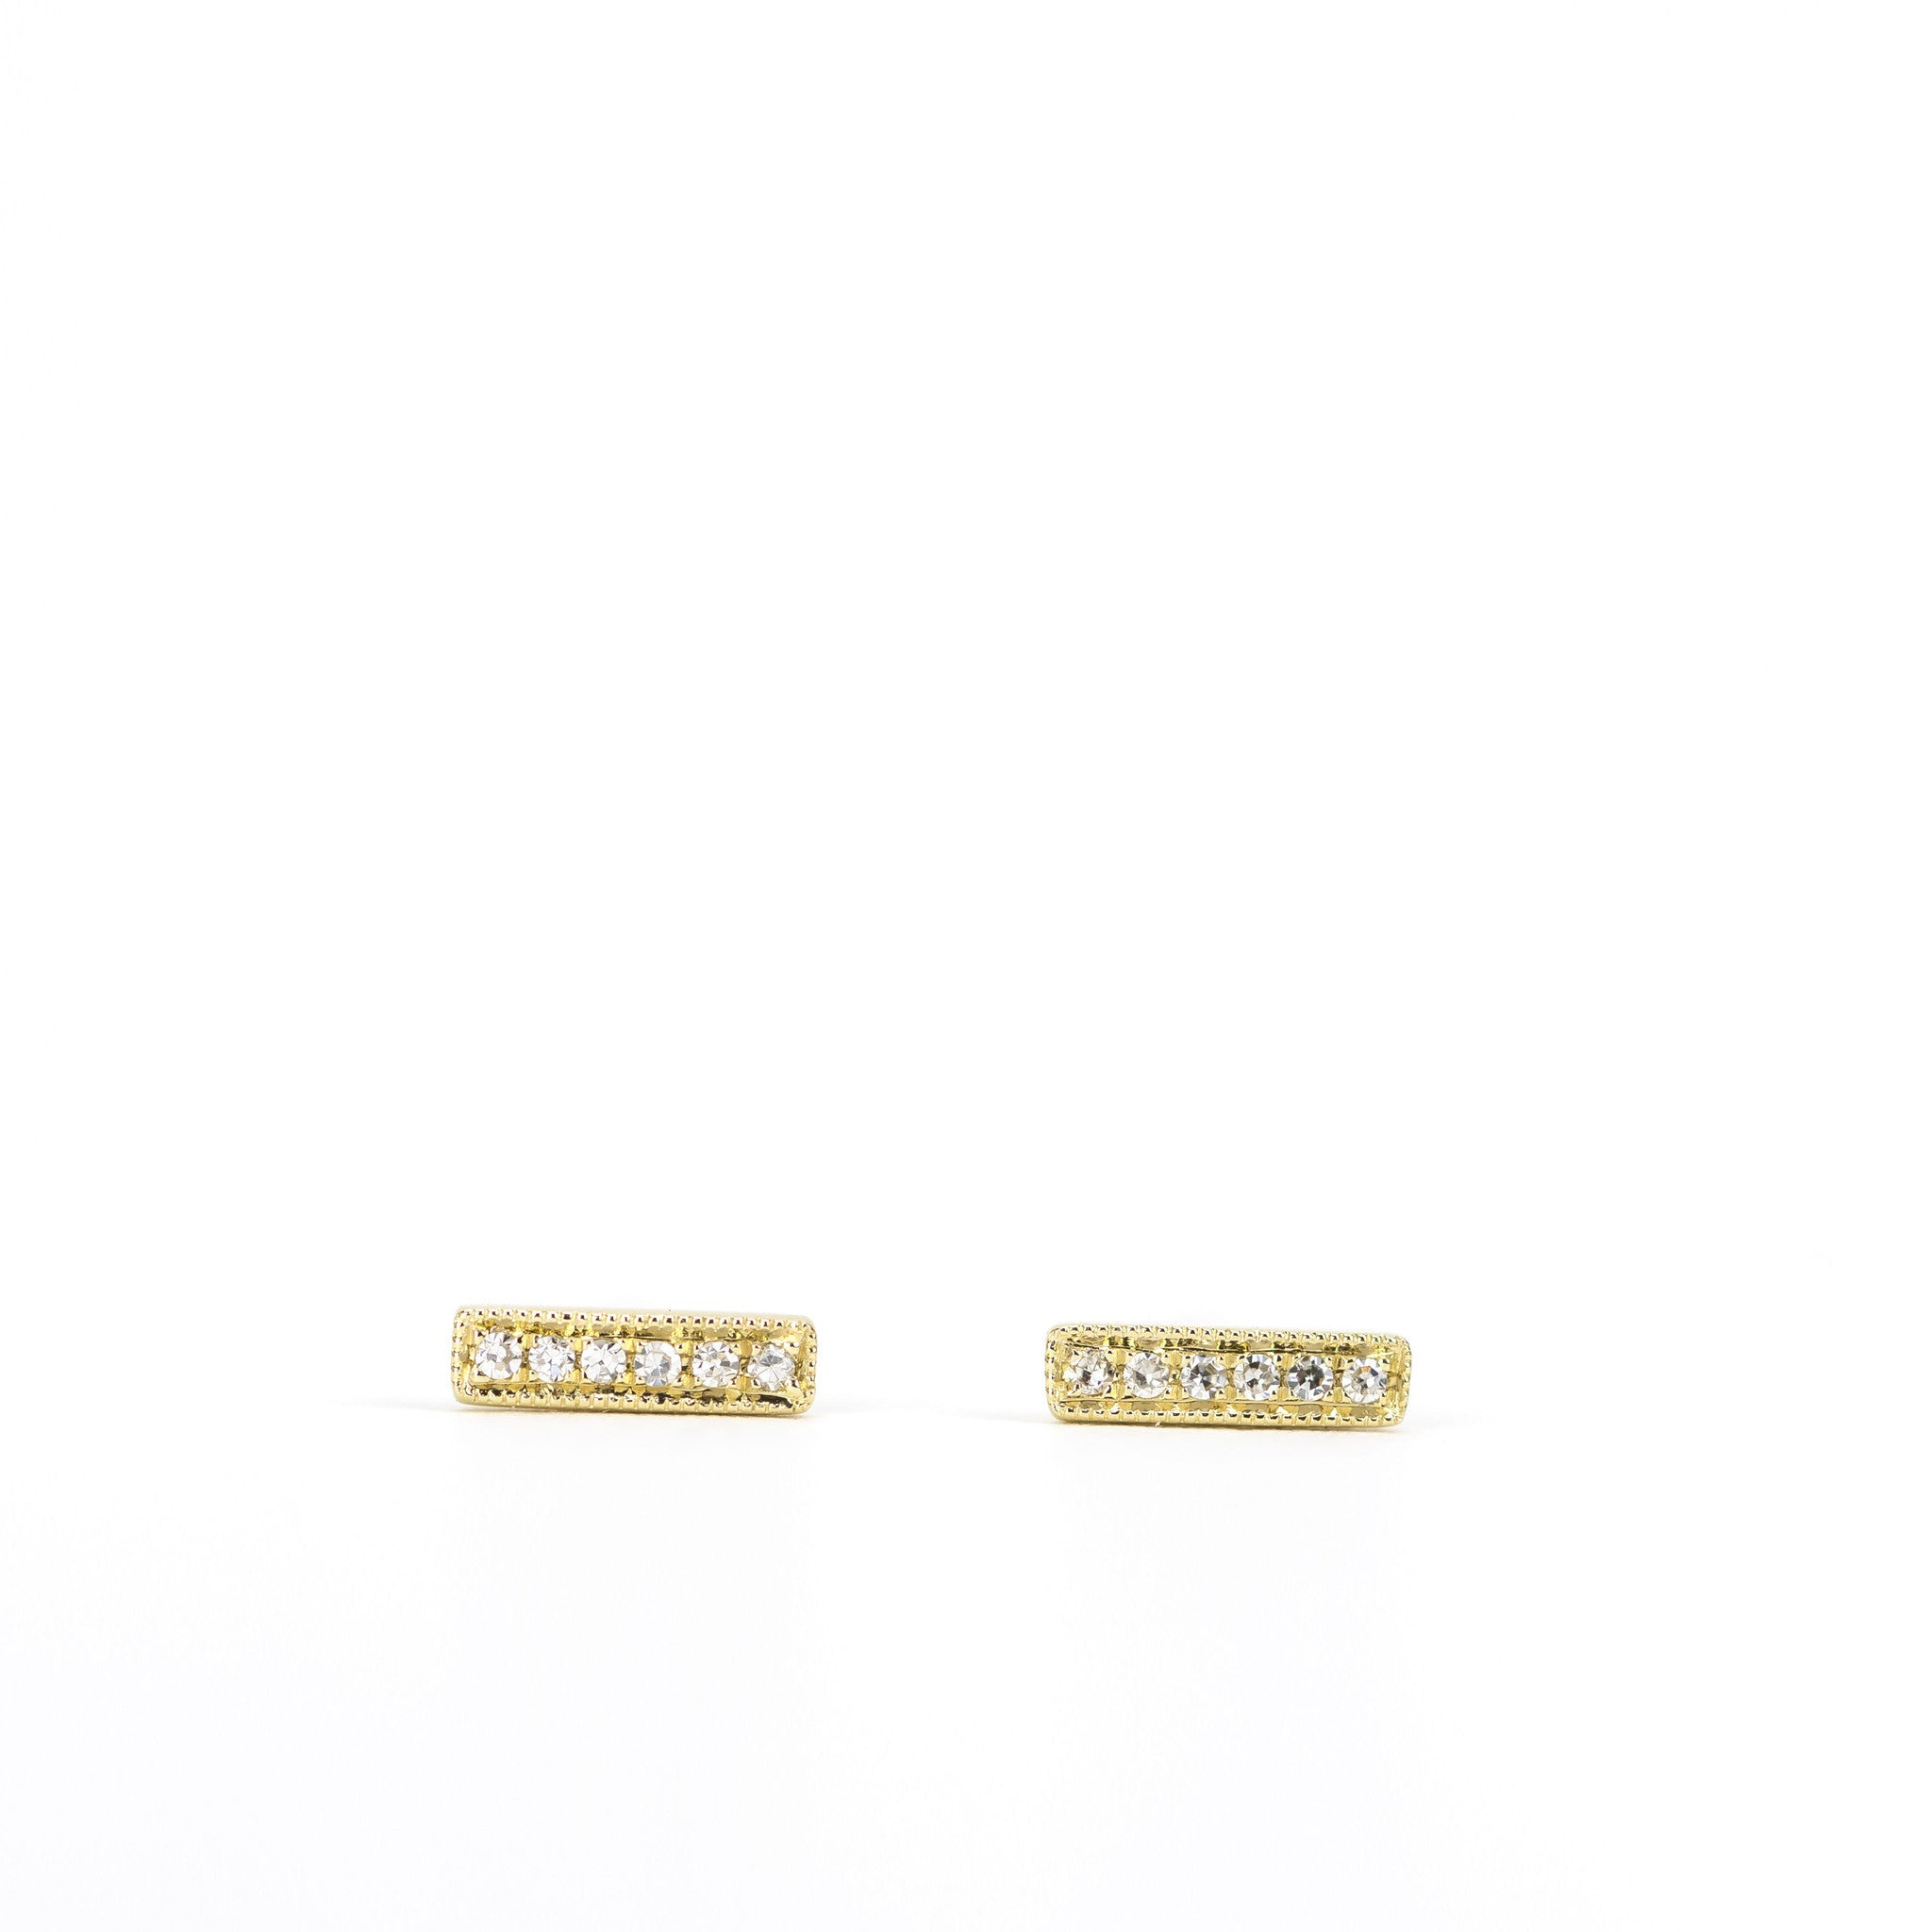 Petite Diamond Bar Earrings by Atheria Jewelry